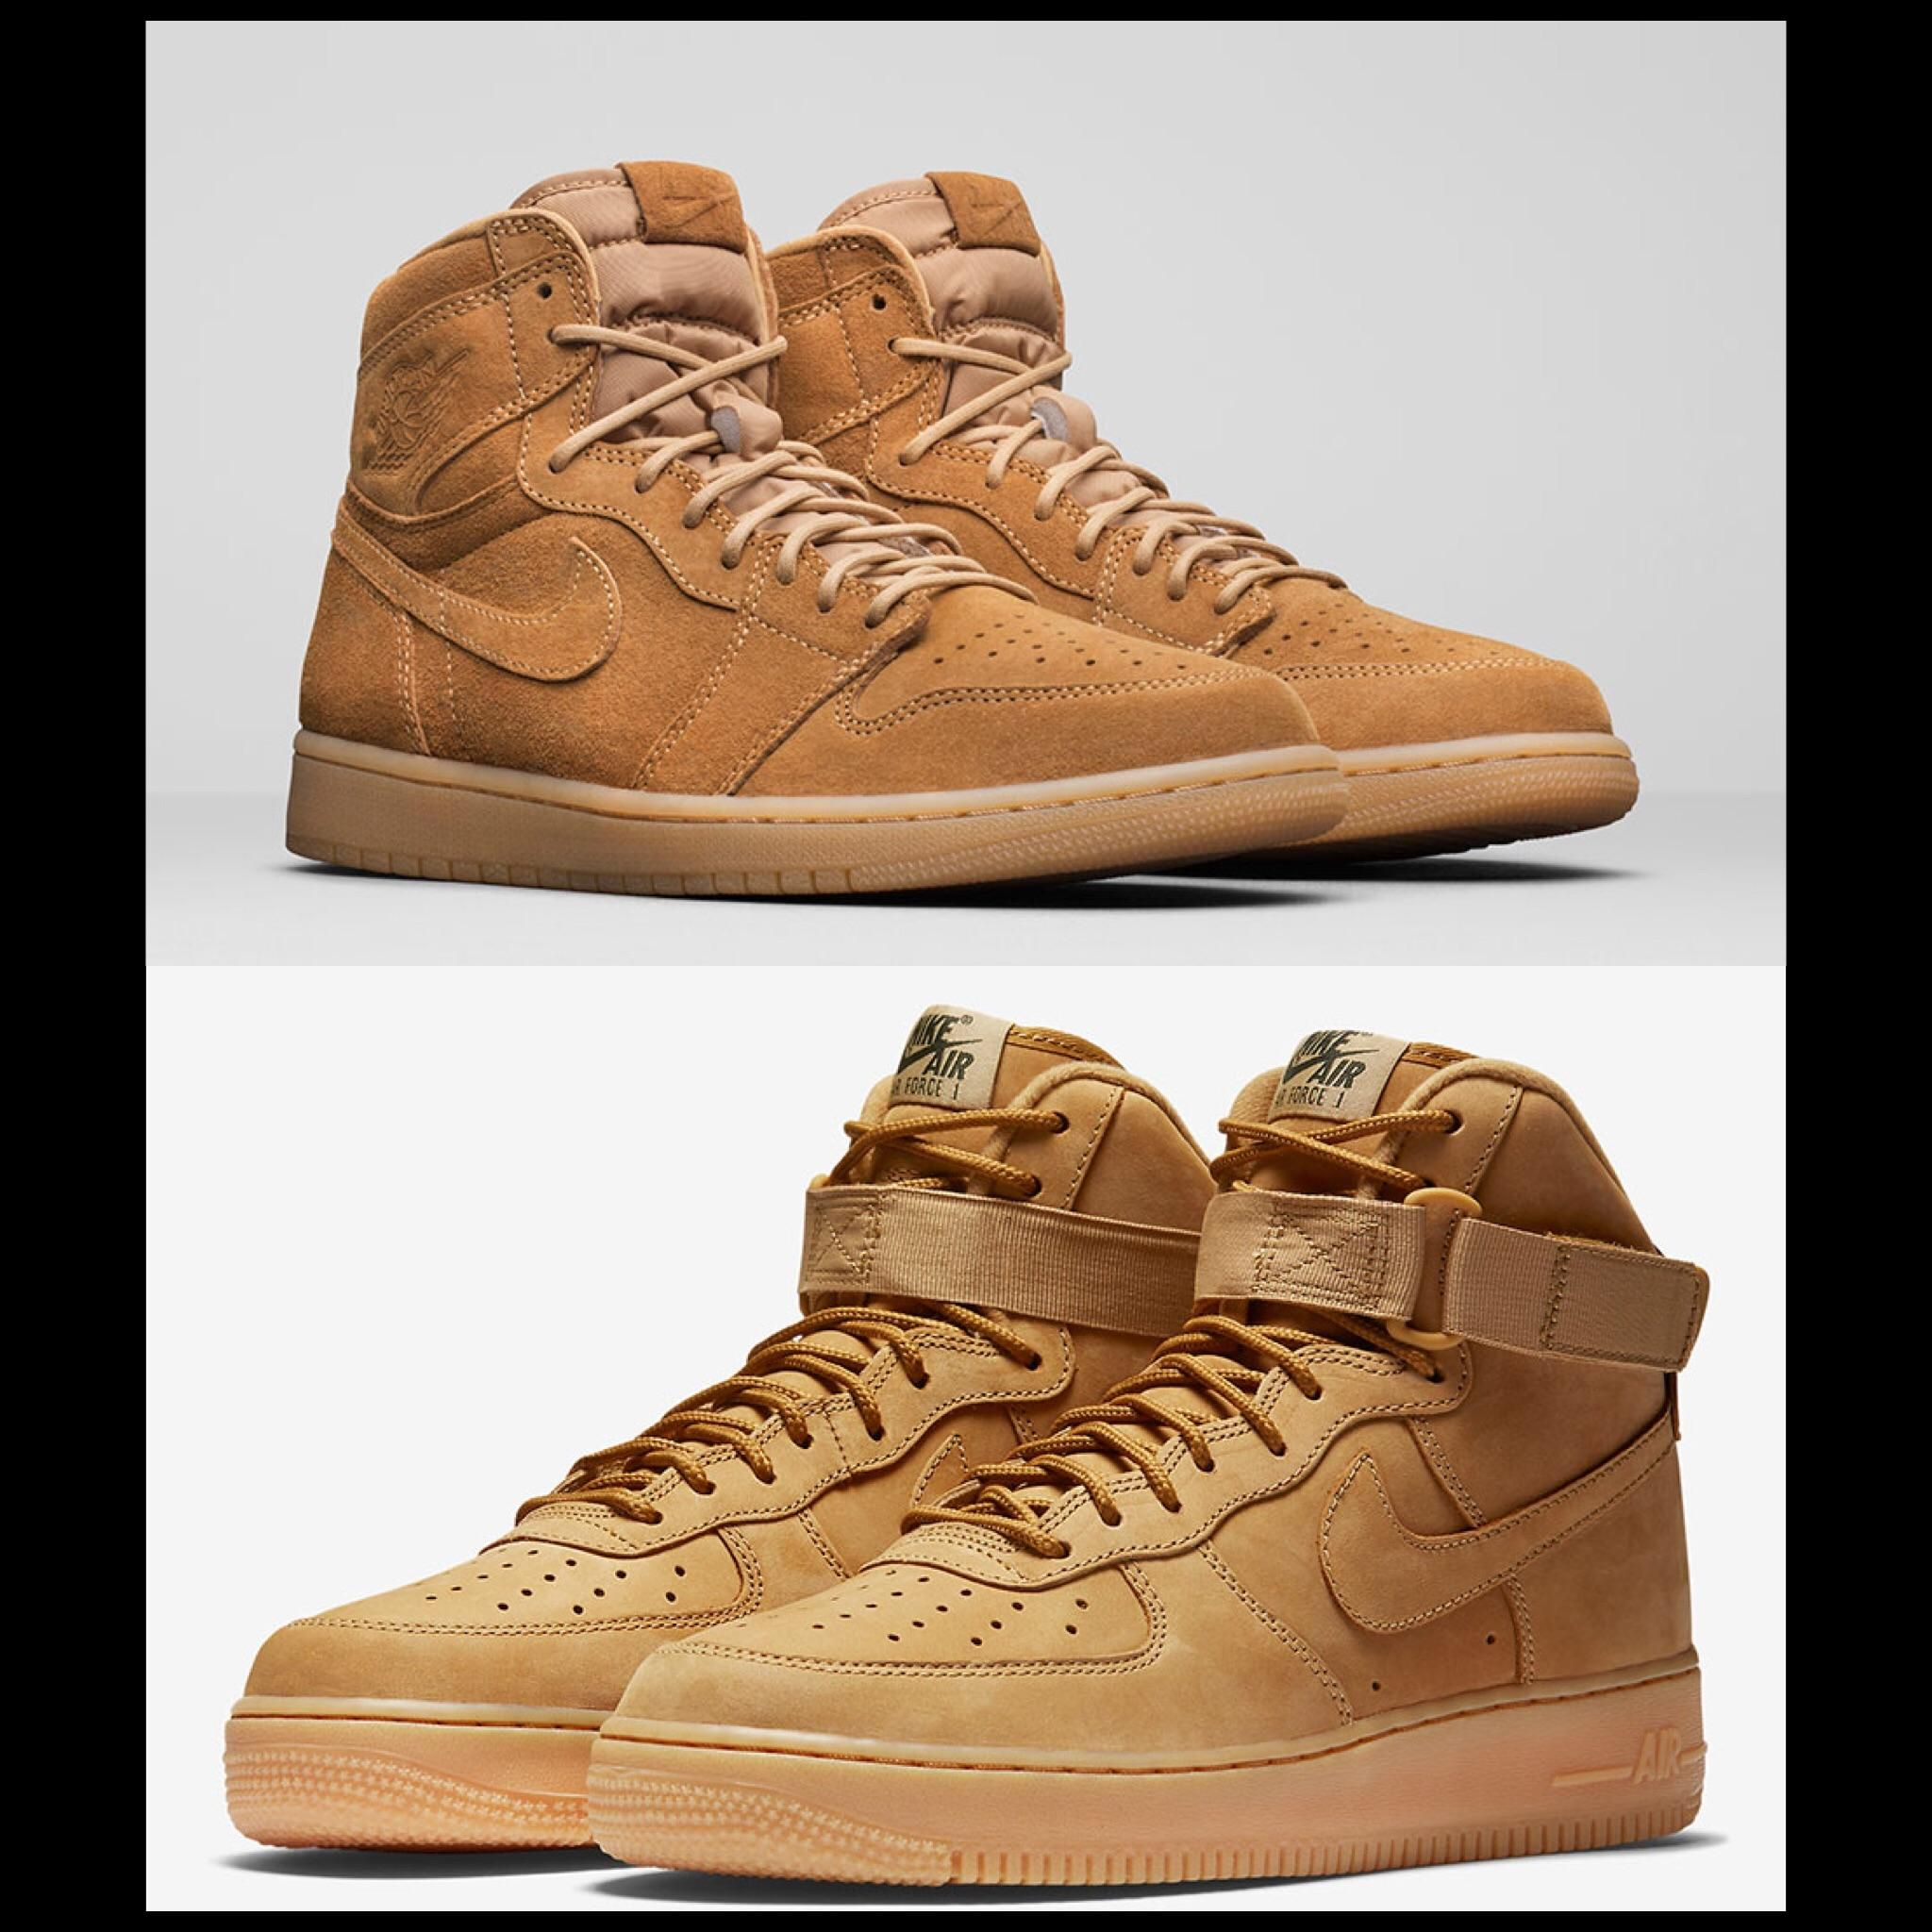 quality design 7dfc5 87af0 Opinions on which to cop  (AJ1 vs AF1 Wheat)